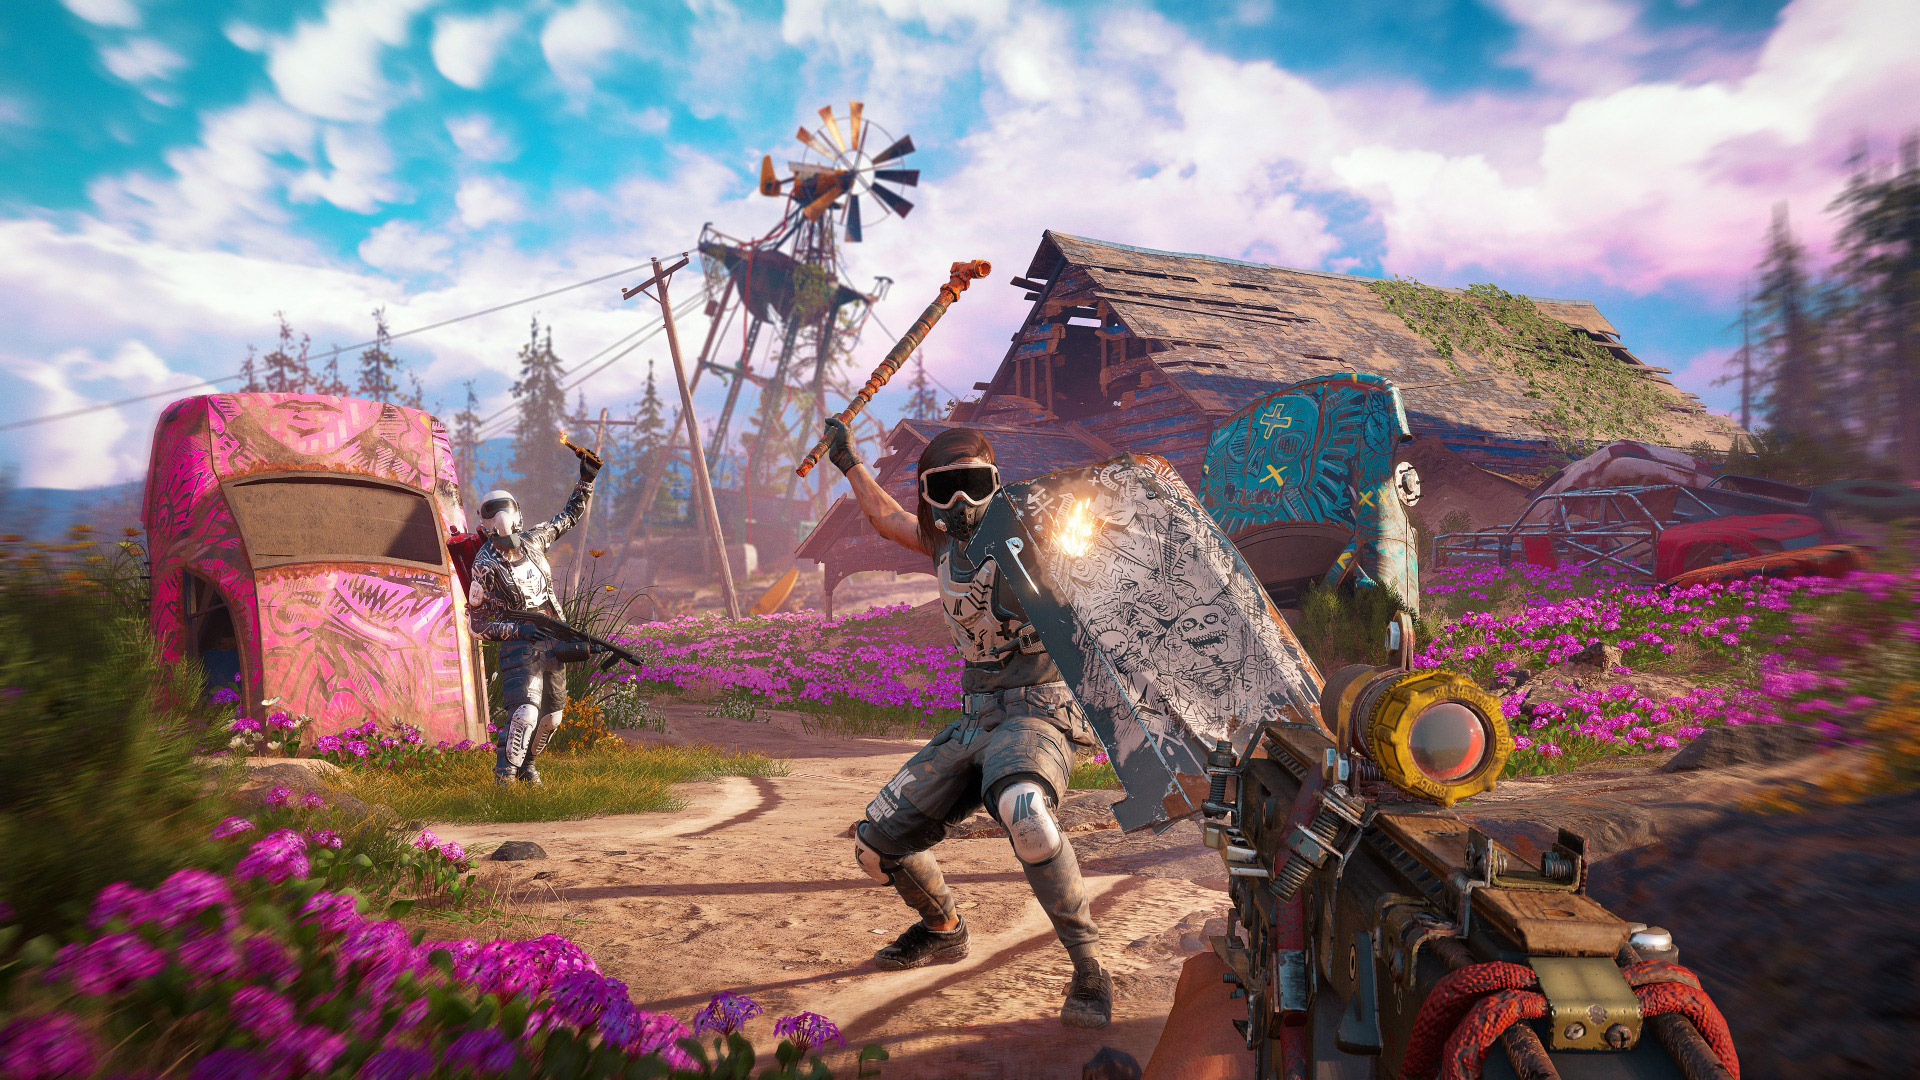 Far Cry New Dawn Multiplayer - Co-Op, PvP, and Map Editor Supported